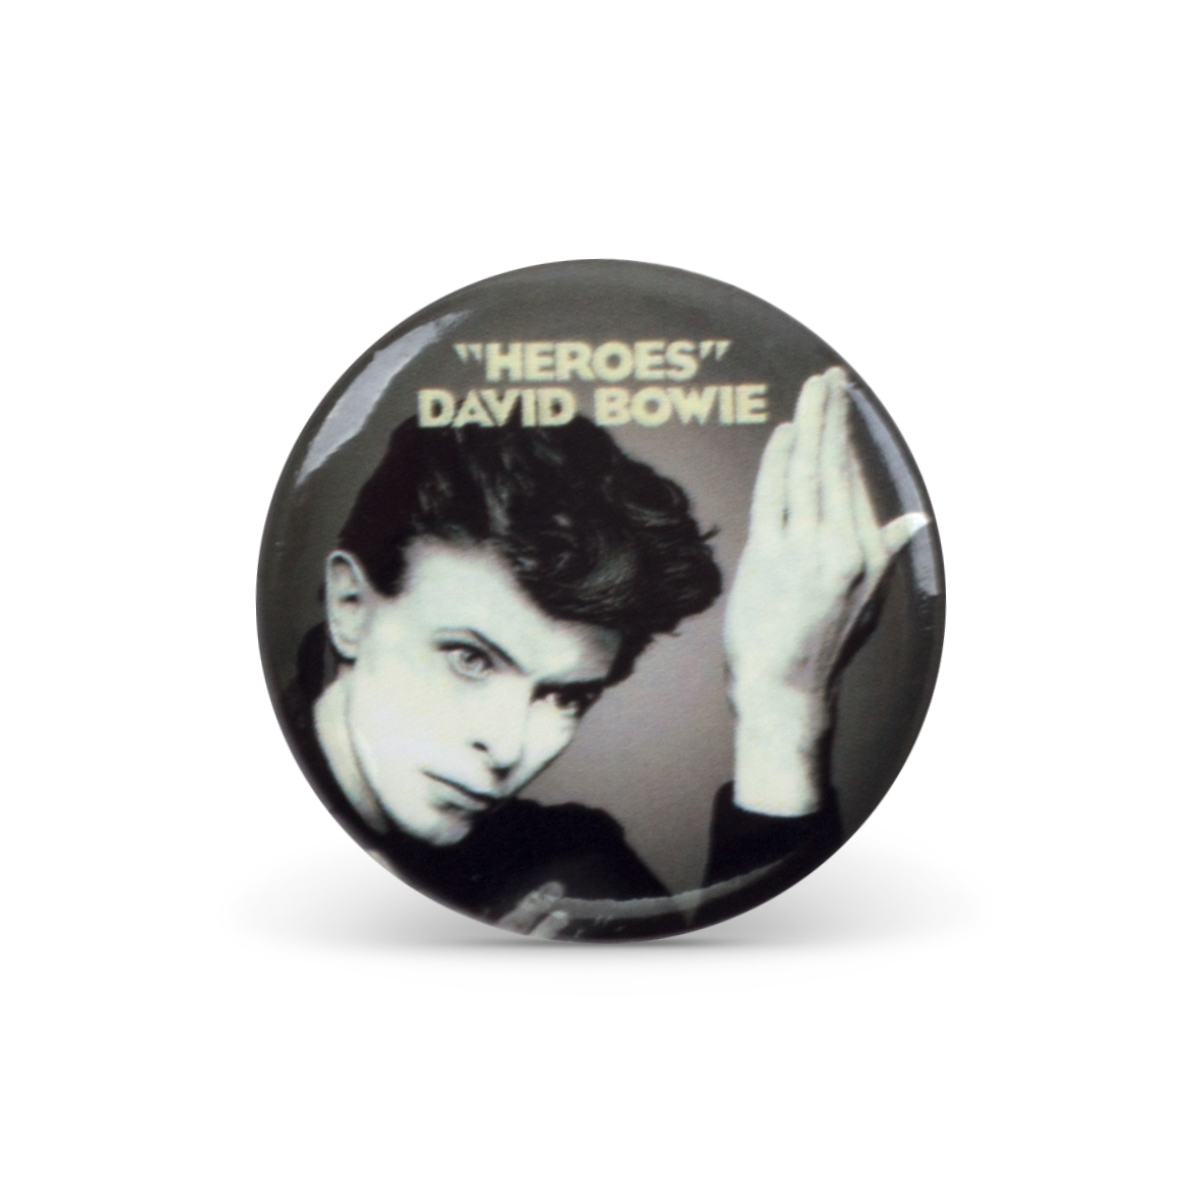 Bowie Heroes Button Pin